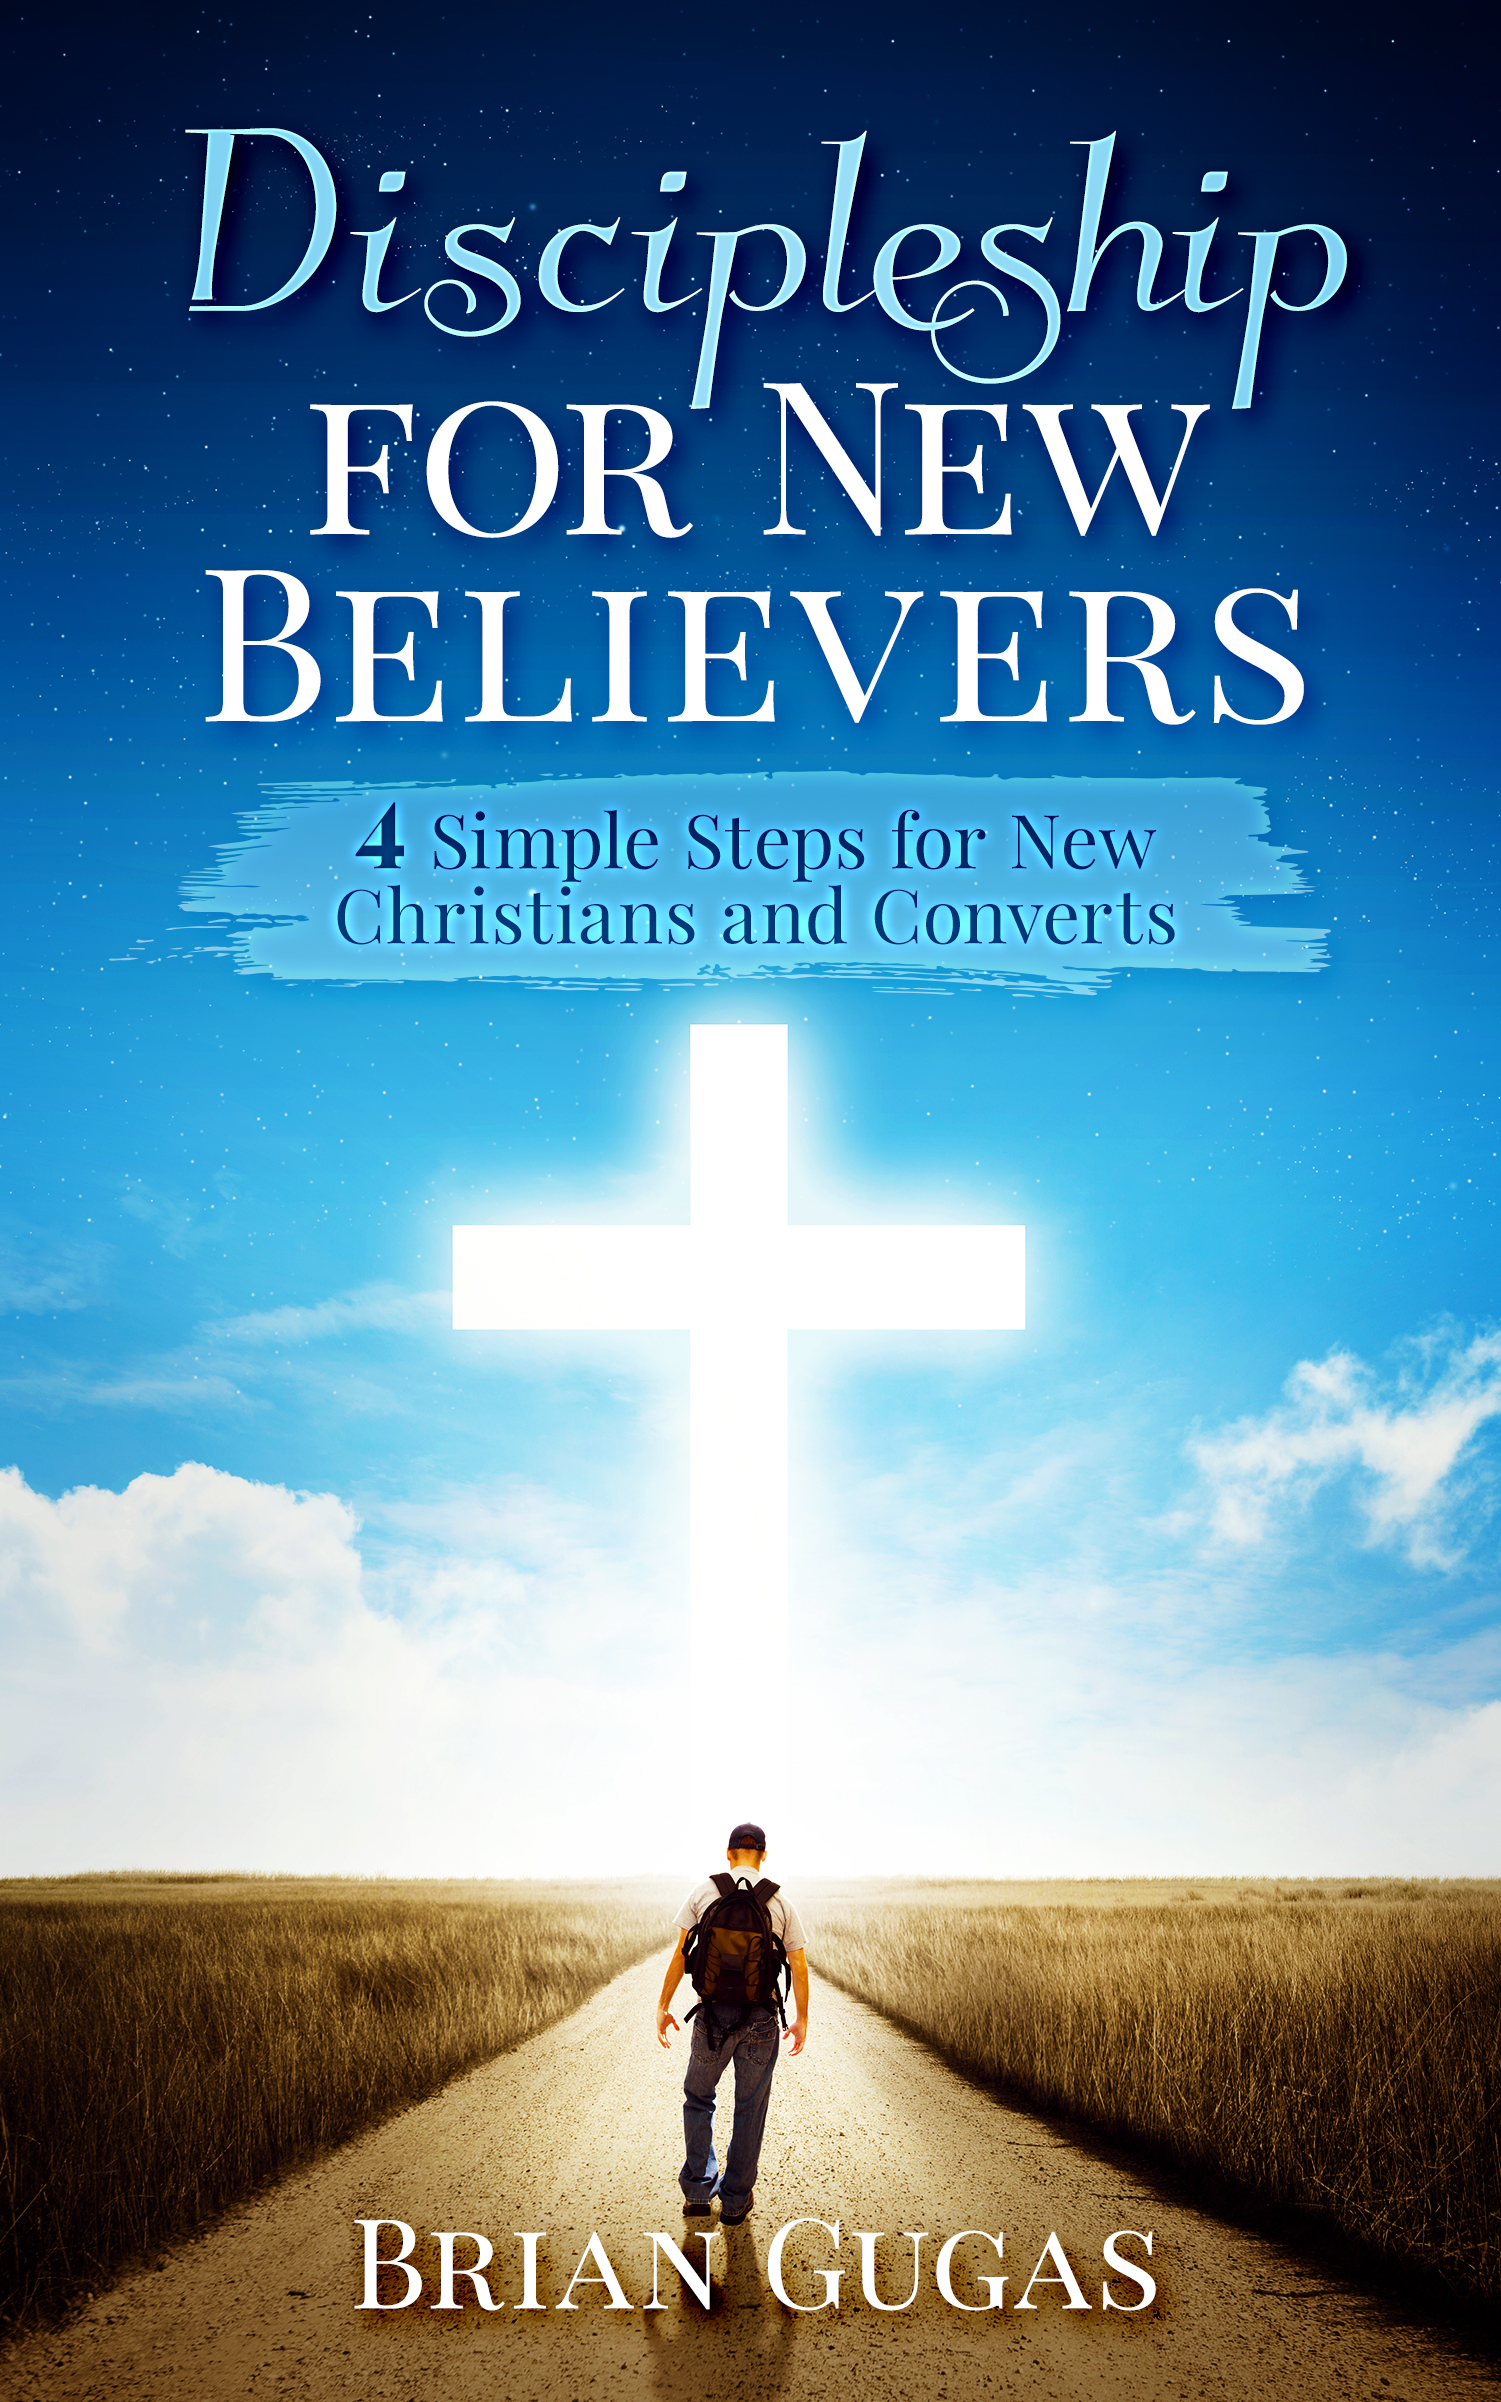 Discipleship for new believers